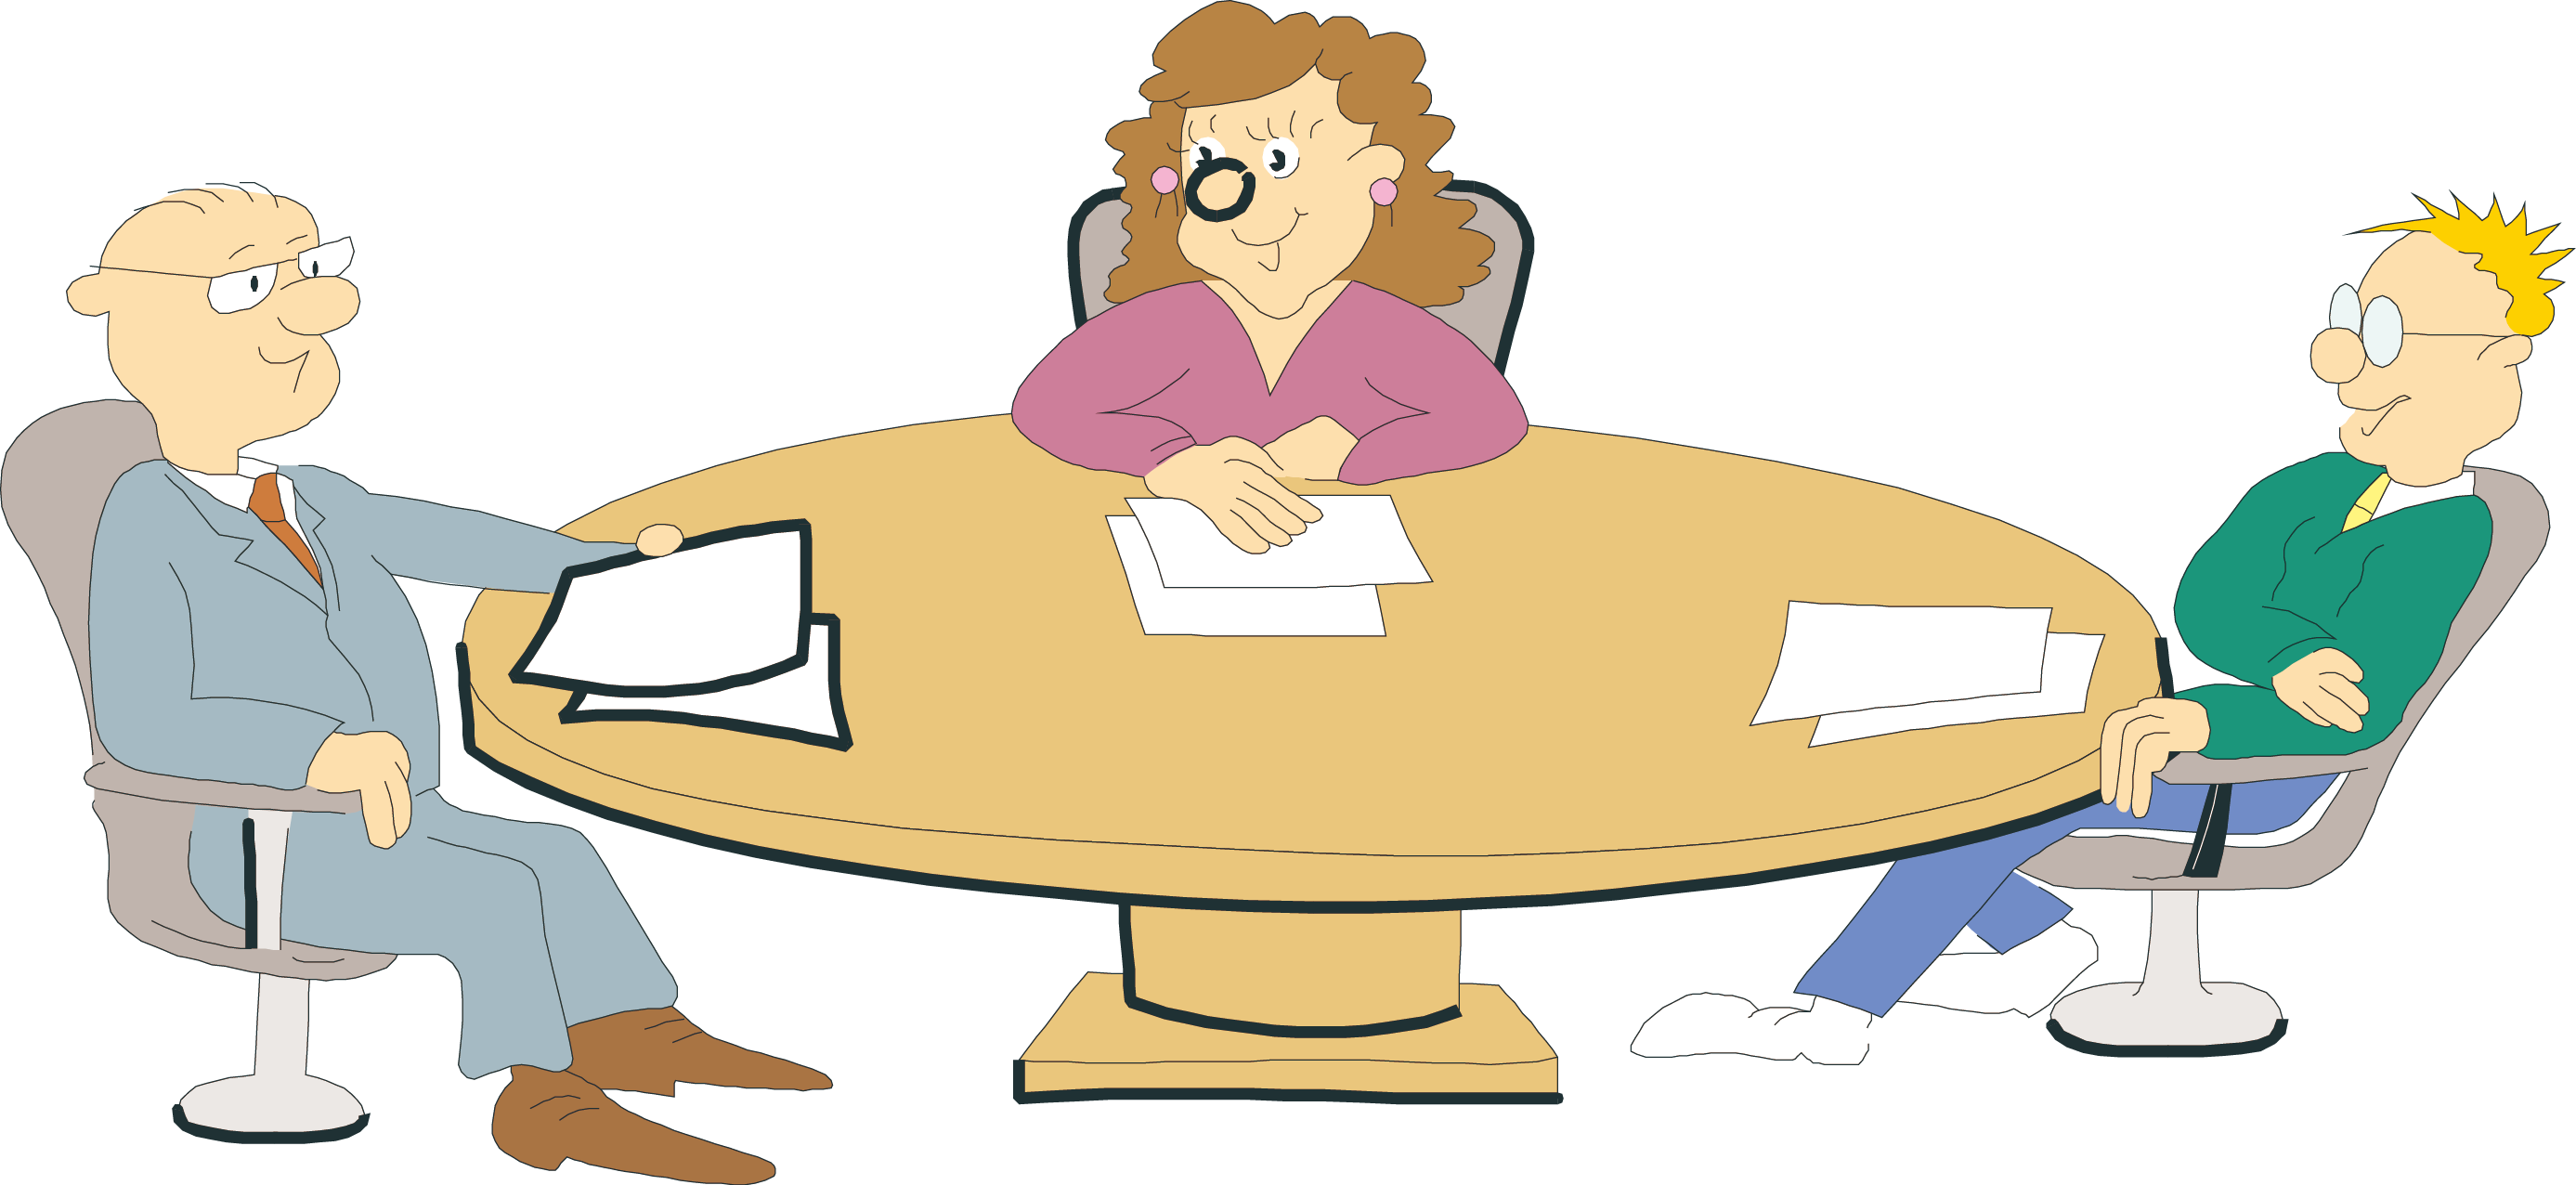 Meeting clipart meeting room. Animation clip art a